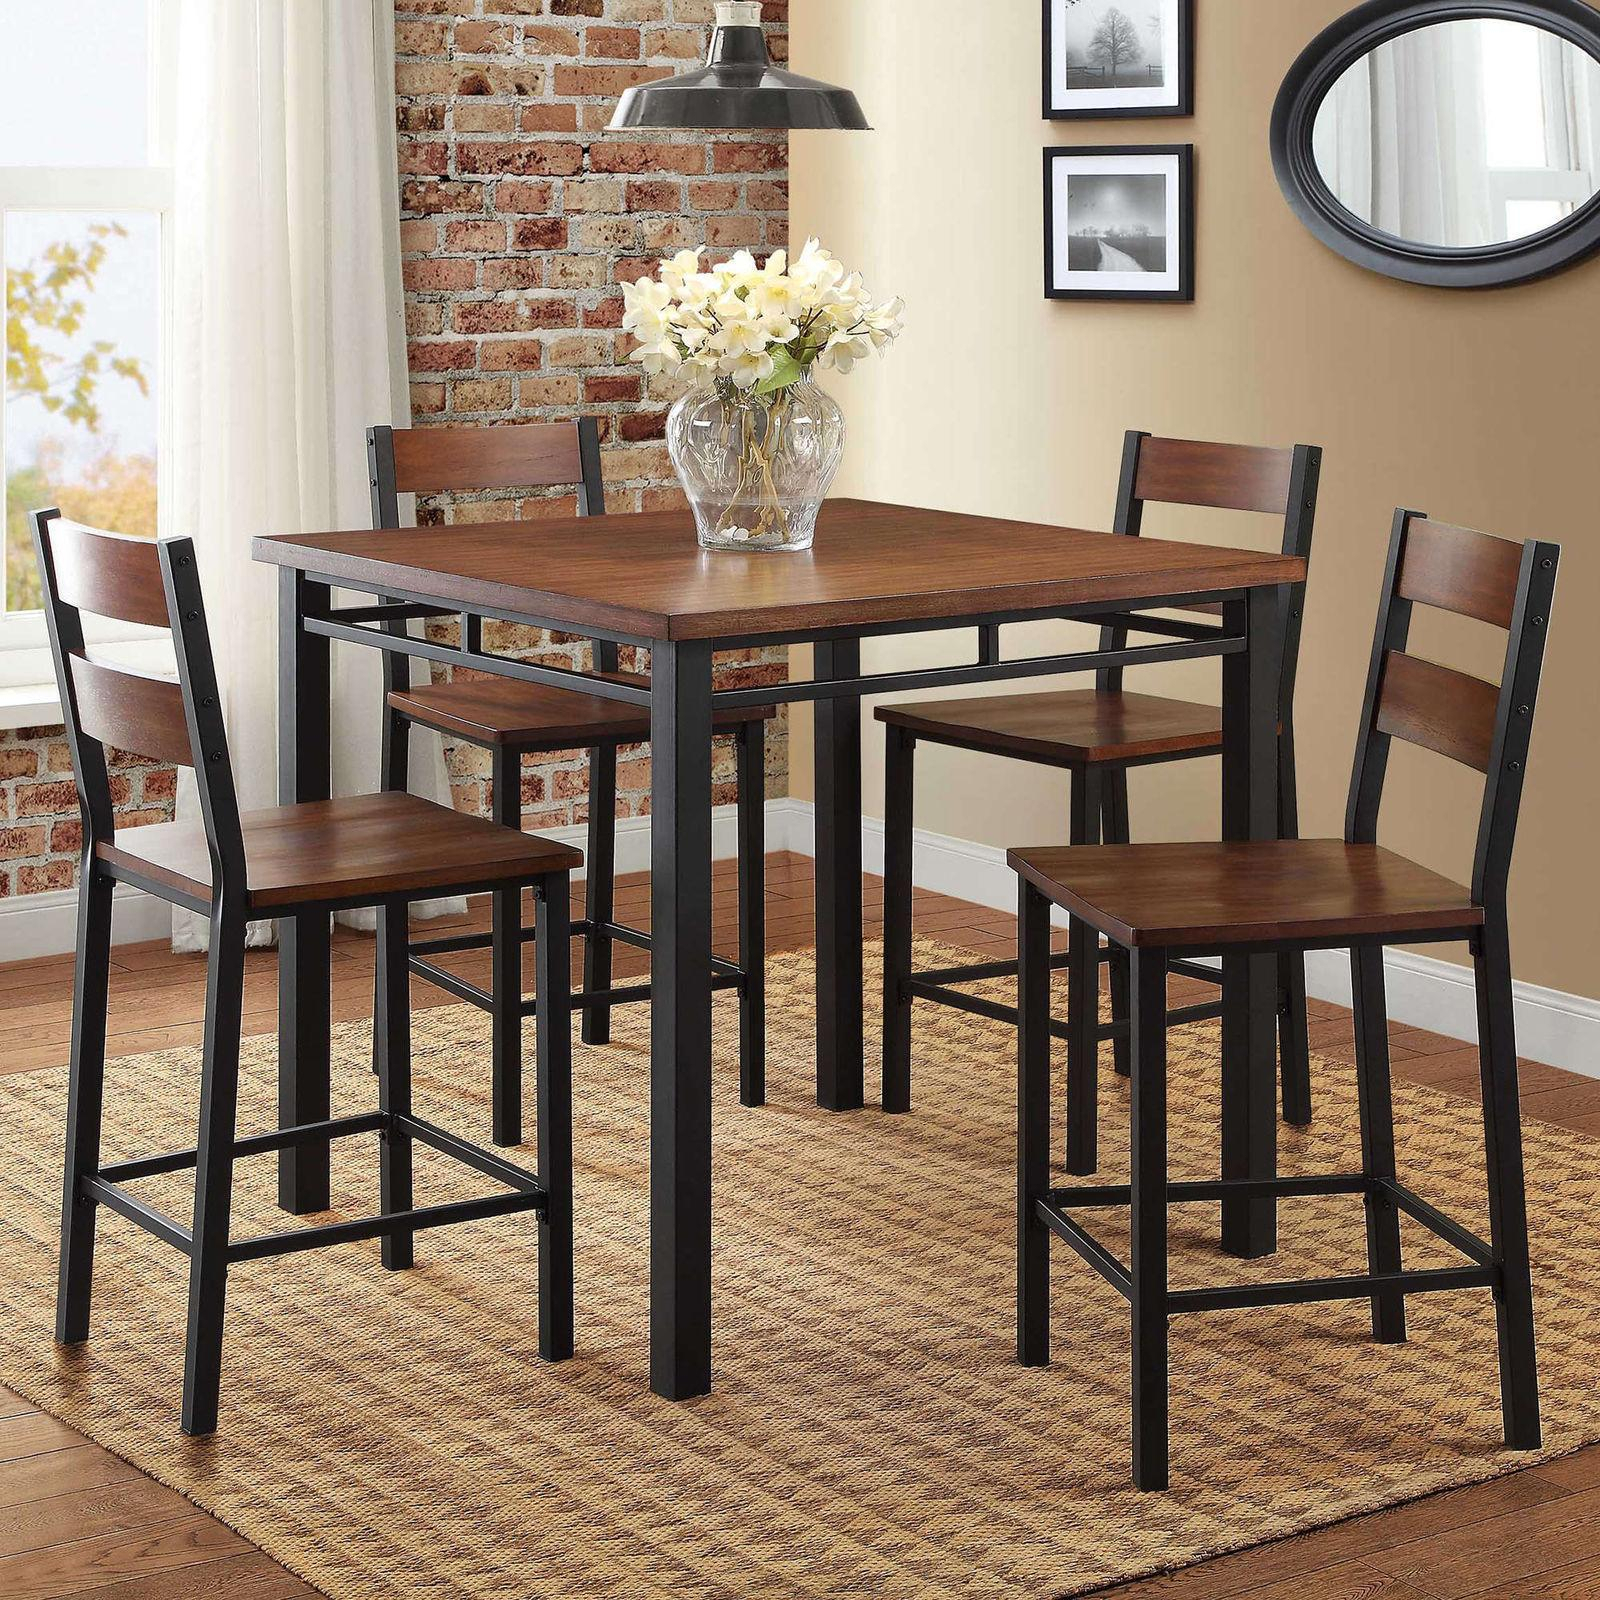 Counter Height Dining Set Mercer 5 Piece Kitchen Dining Furniture Table  Chair Pertaining To Recent Ligon 3 Piece Breakfast Nook Dining Sets (Image 5 of 20)